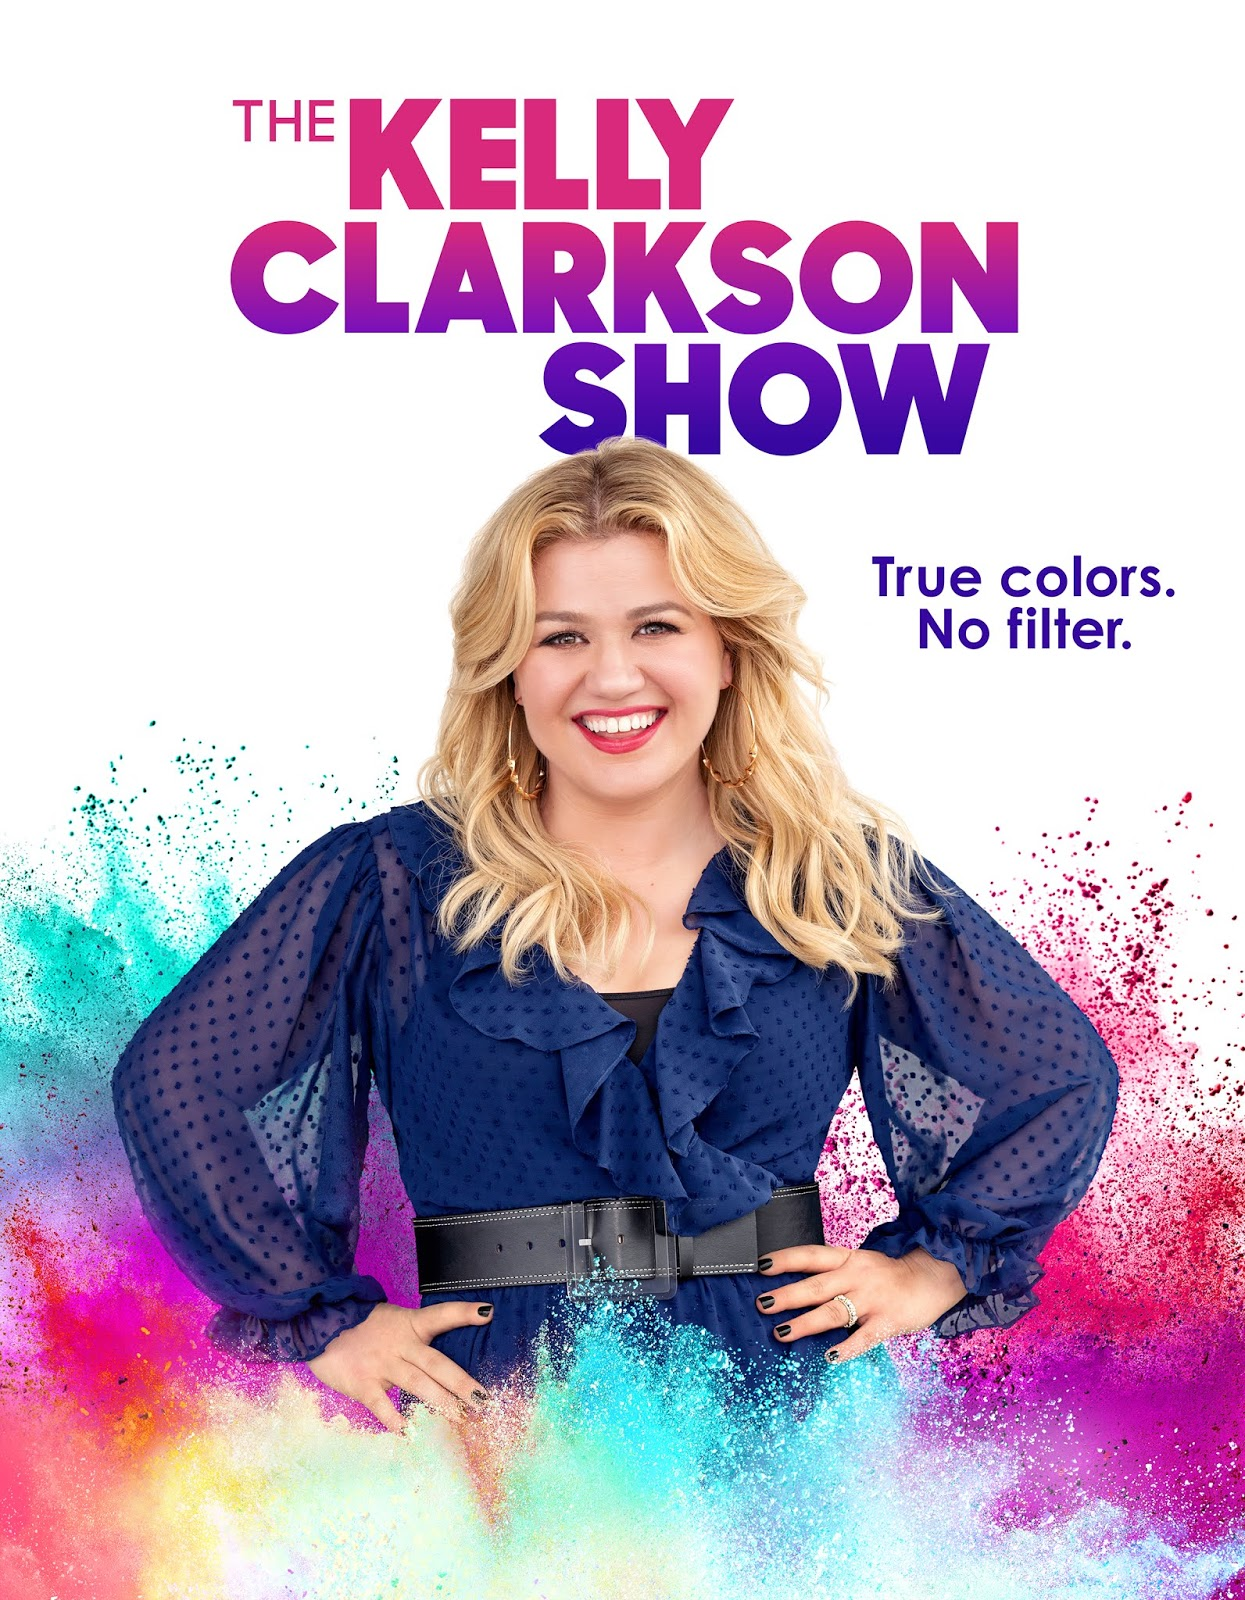 The First Official Week Of The Kelly Clarkson Show